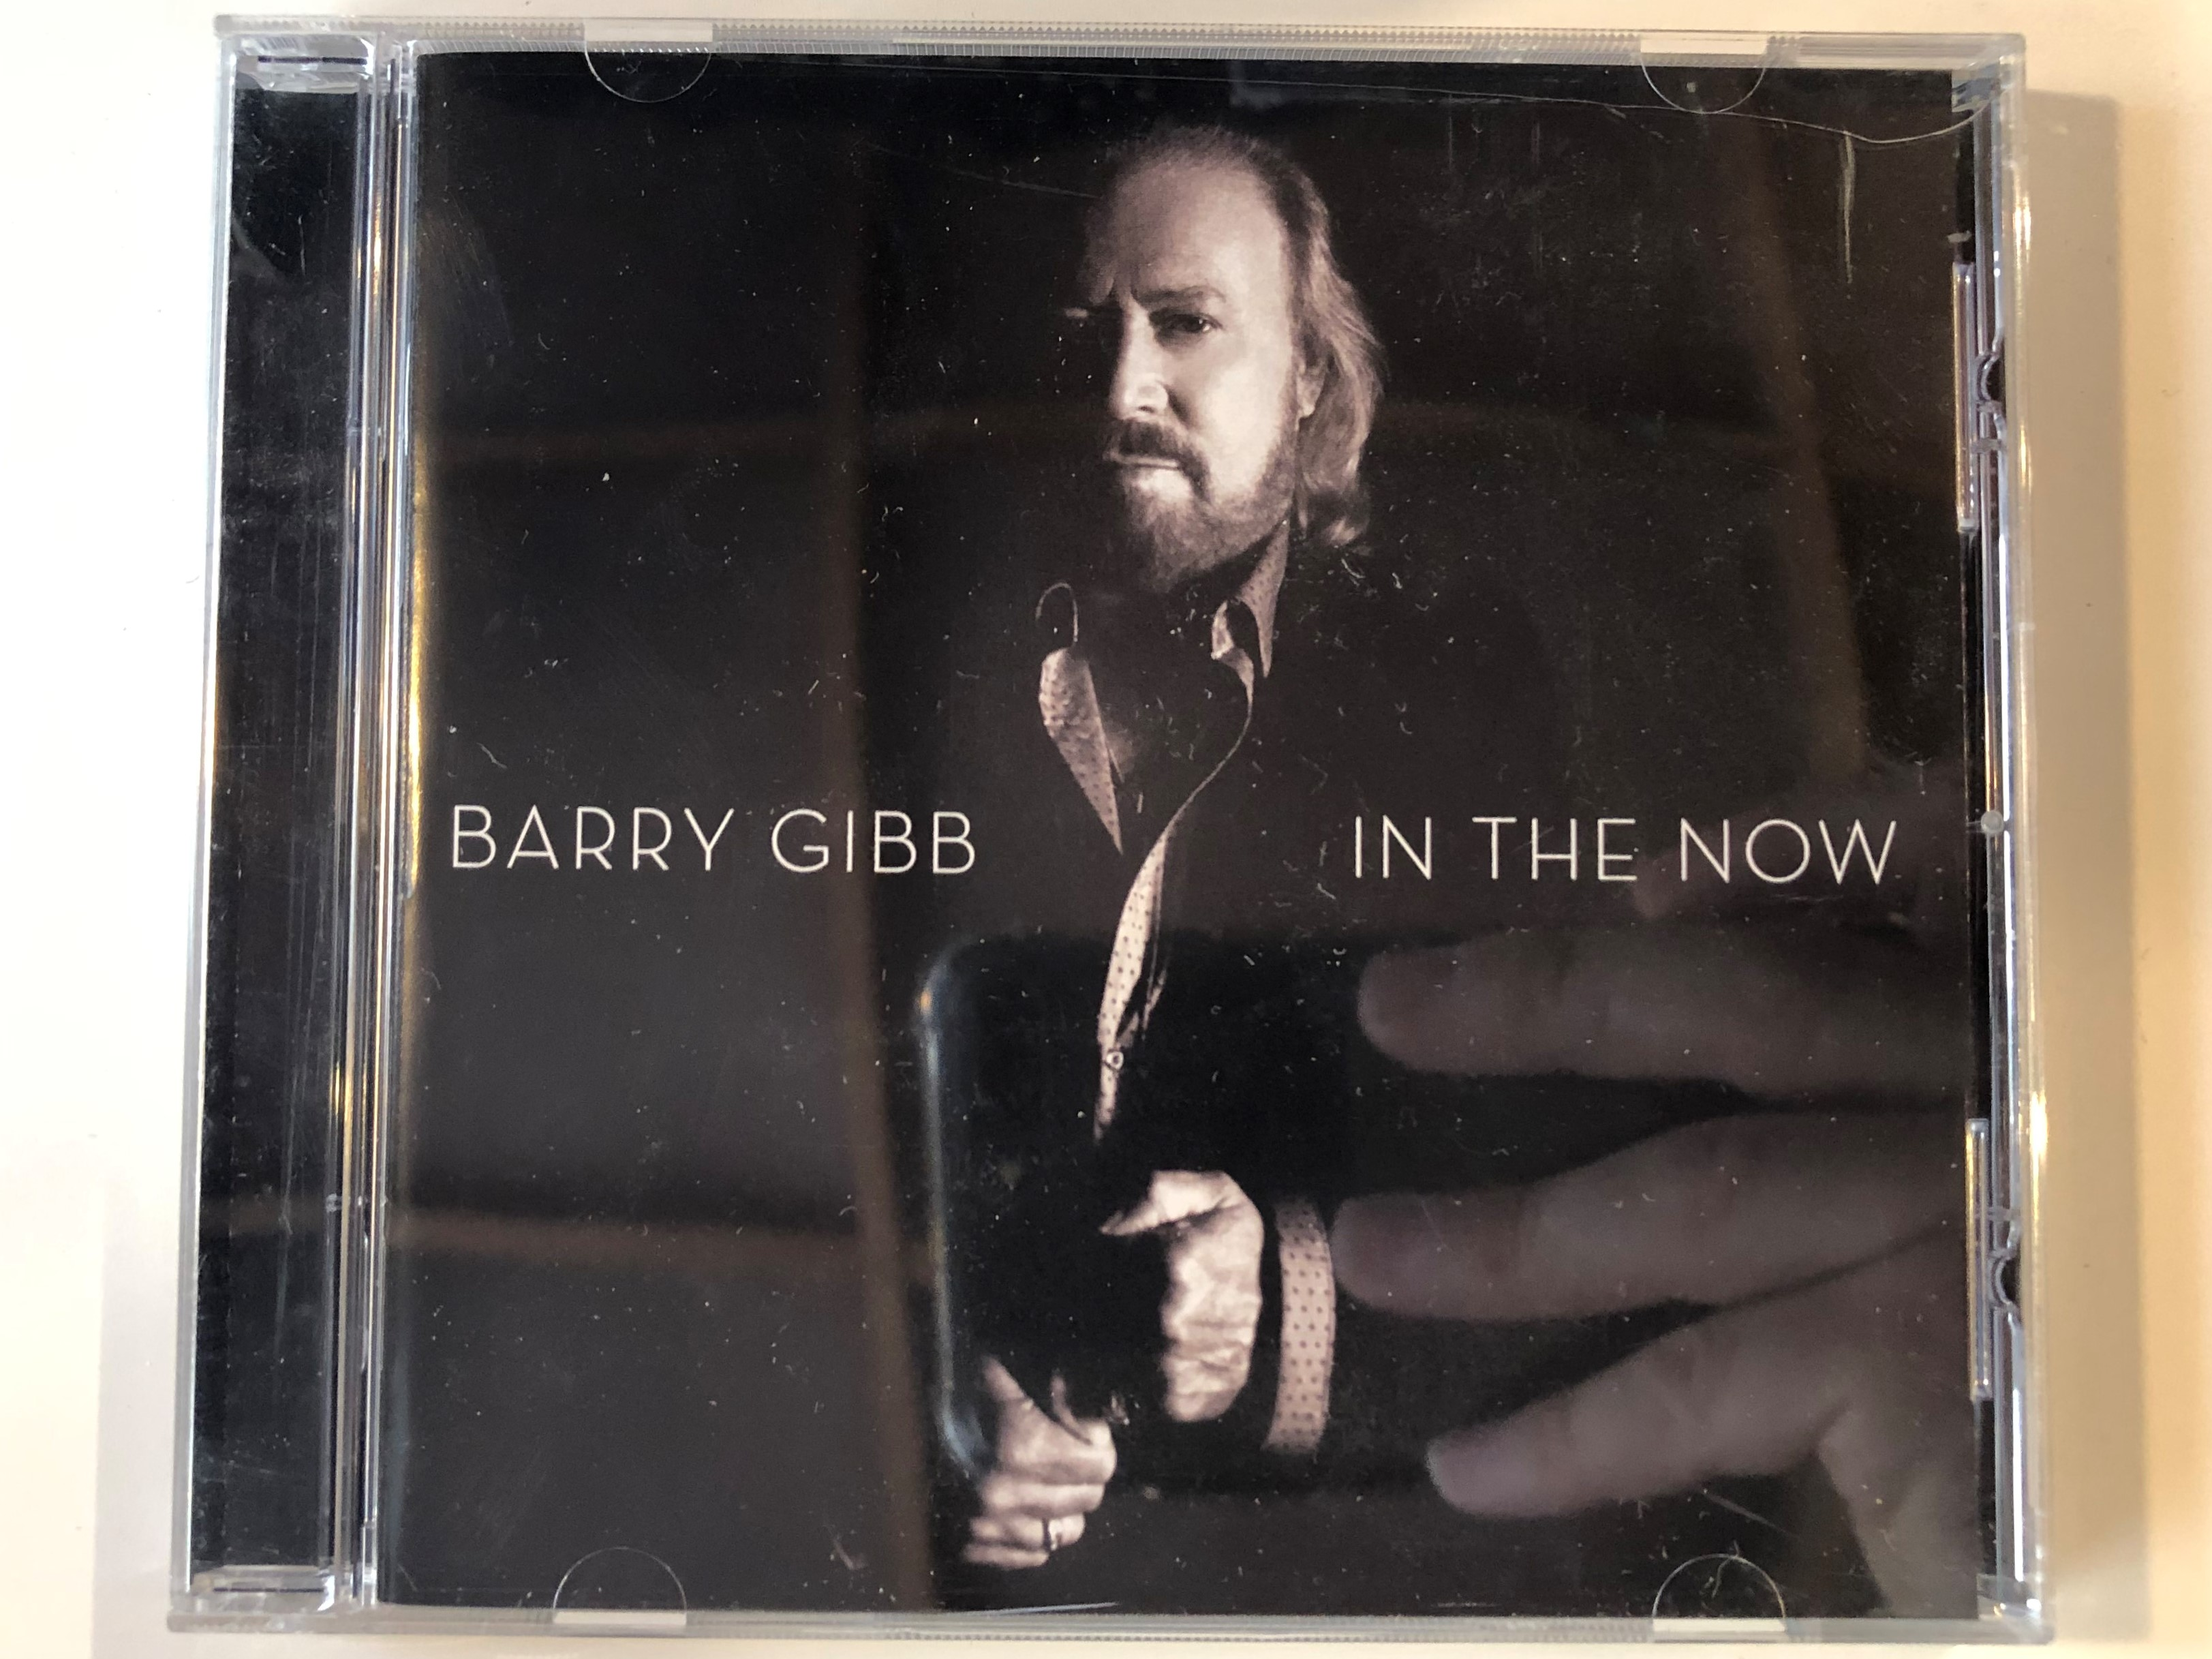 barry-gibb-in-the-now-columbia-audio-cd-2016-88985375382-1-.jpg